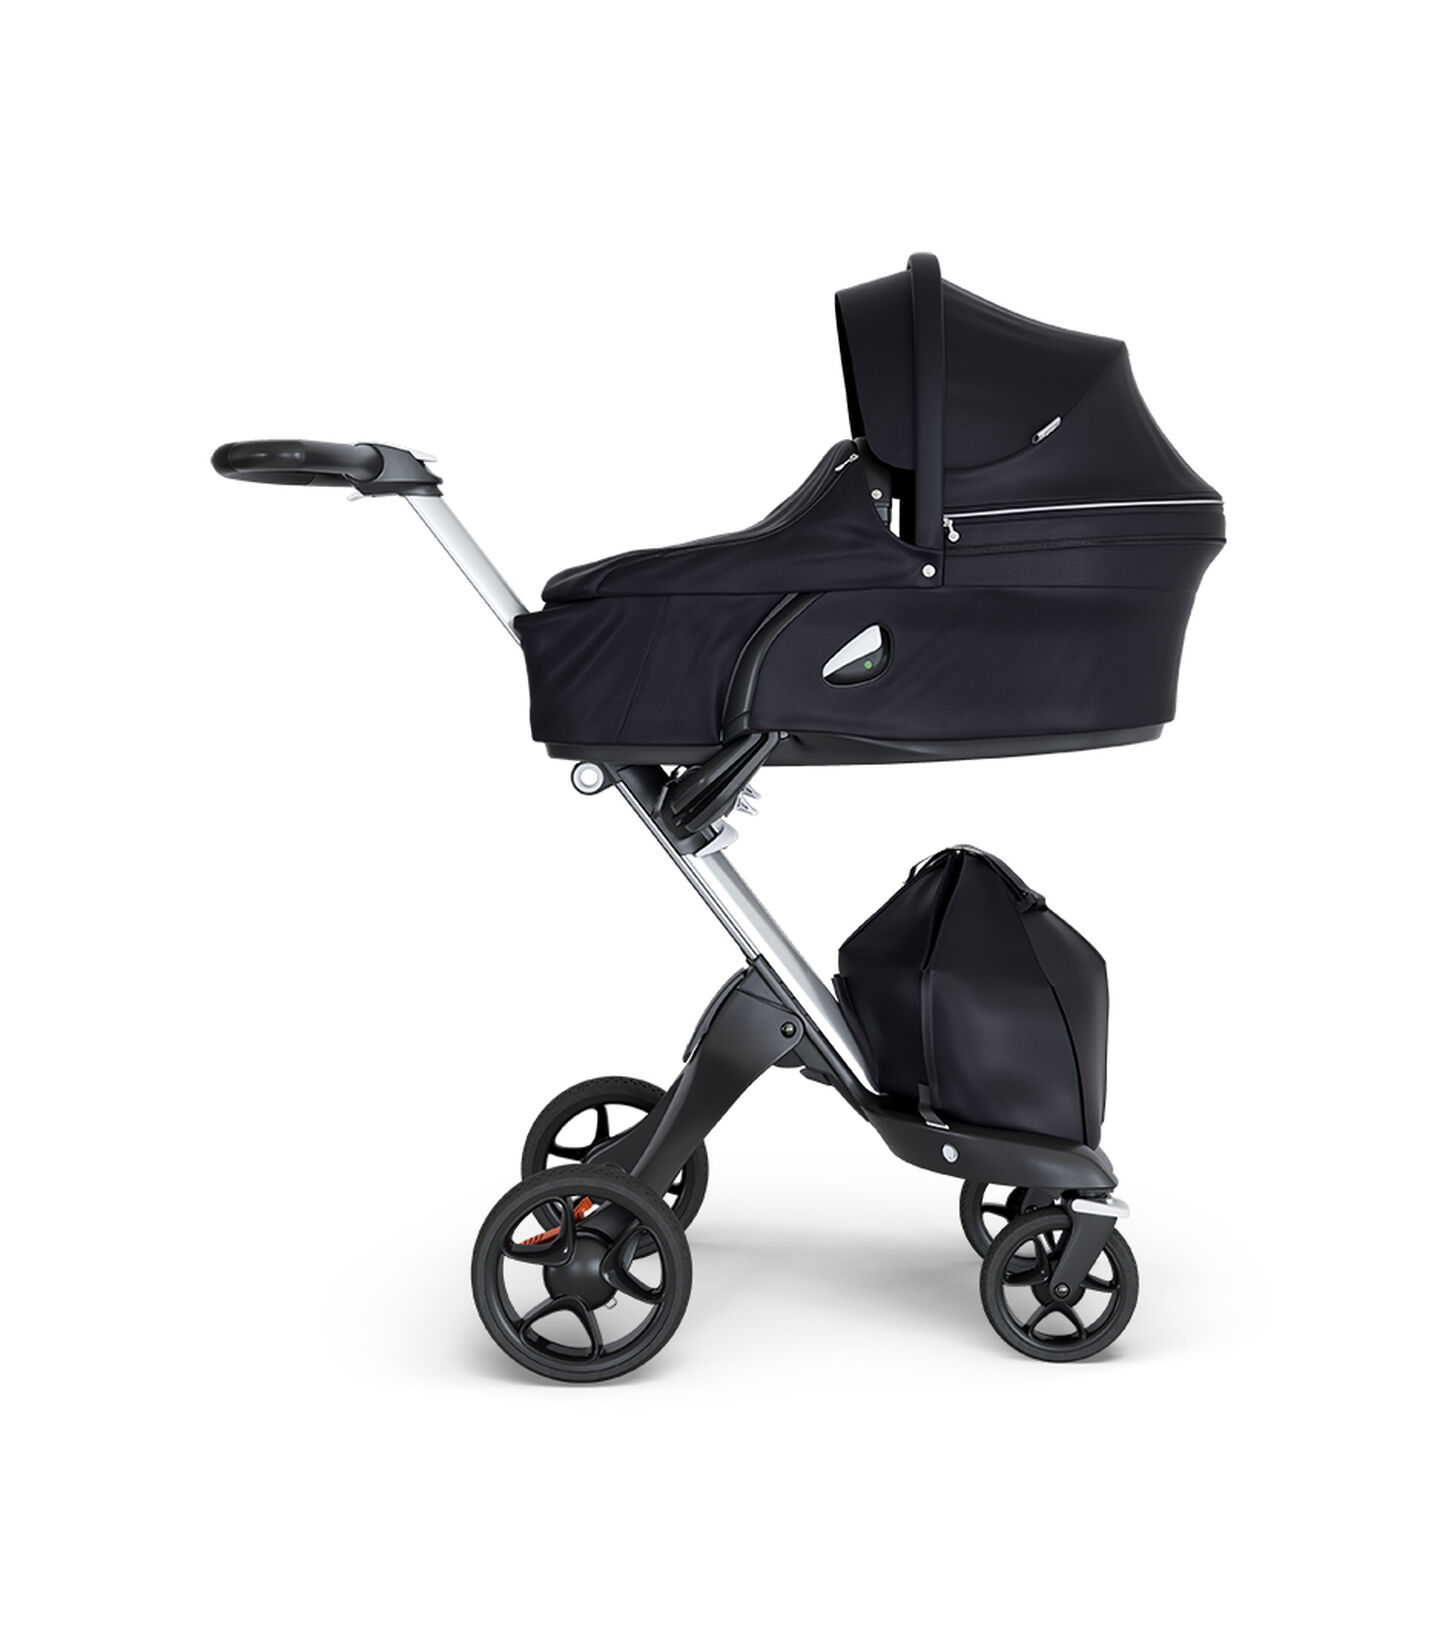 Stokke® Xplory® wtih Silver Chassis and Leatherette Black handle. Stokke® Stroller Carry Cot Black.